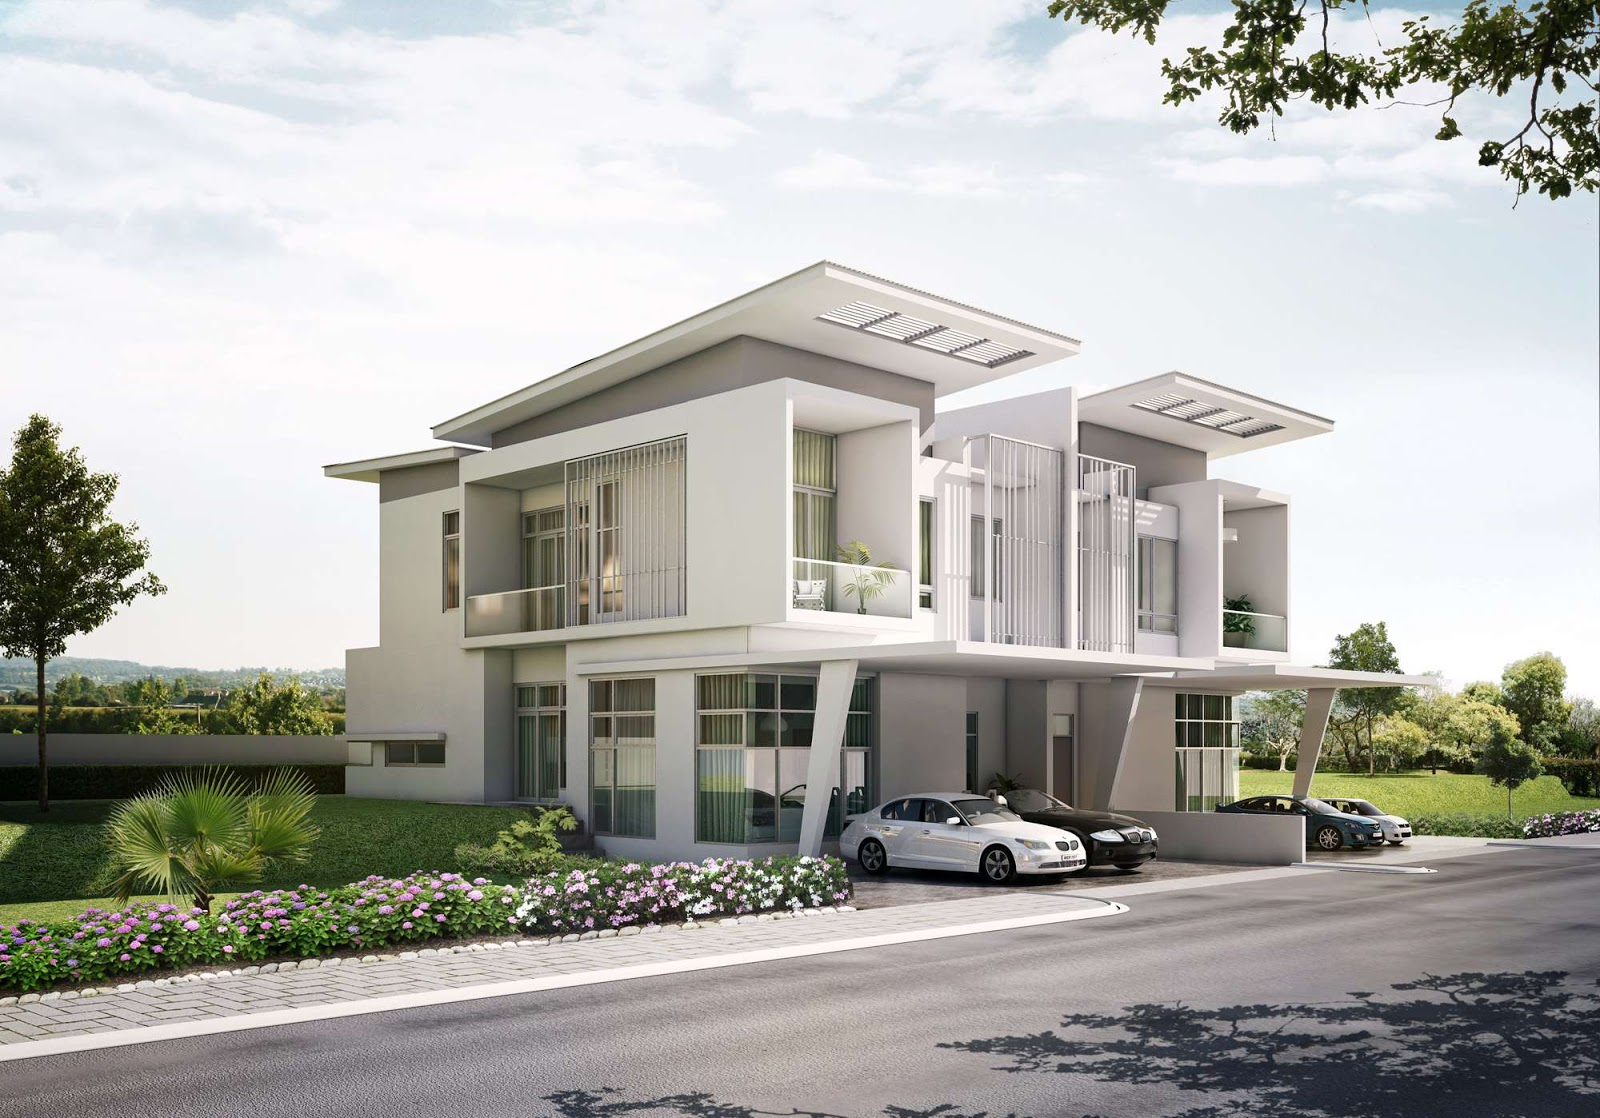 Singapore modern homes exterior designs home interior for Exterior design of small houses